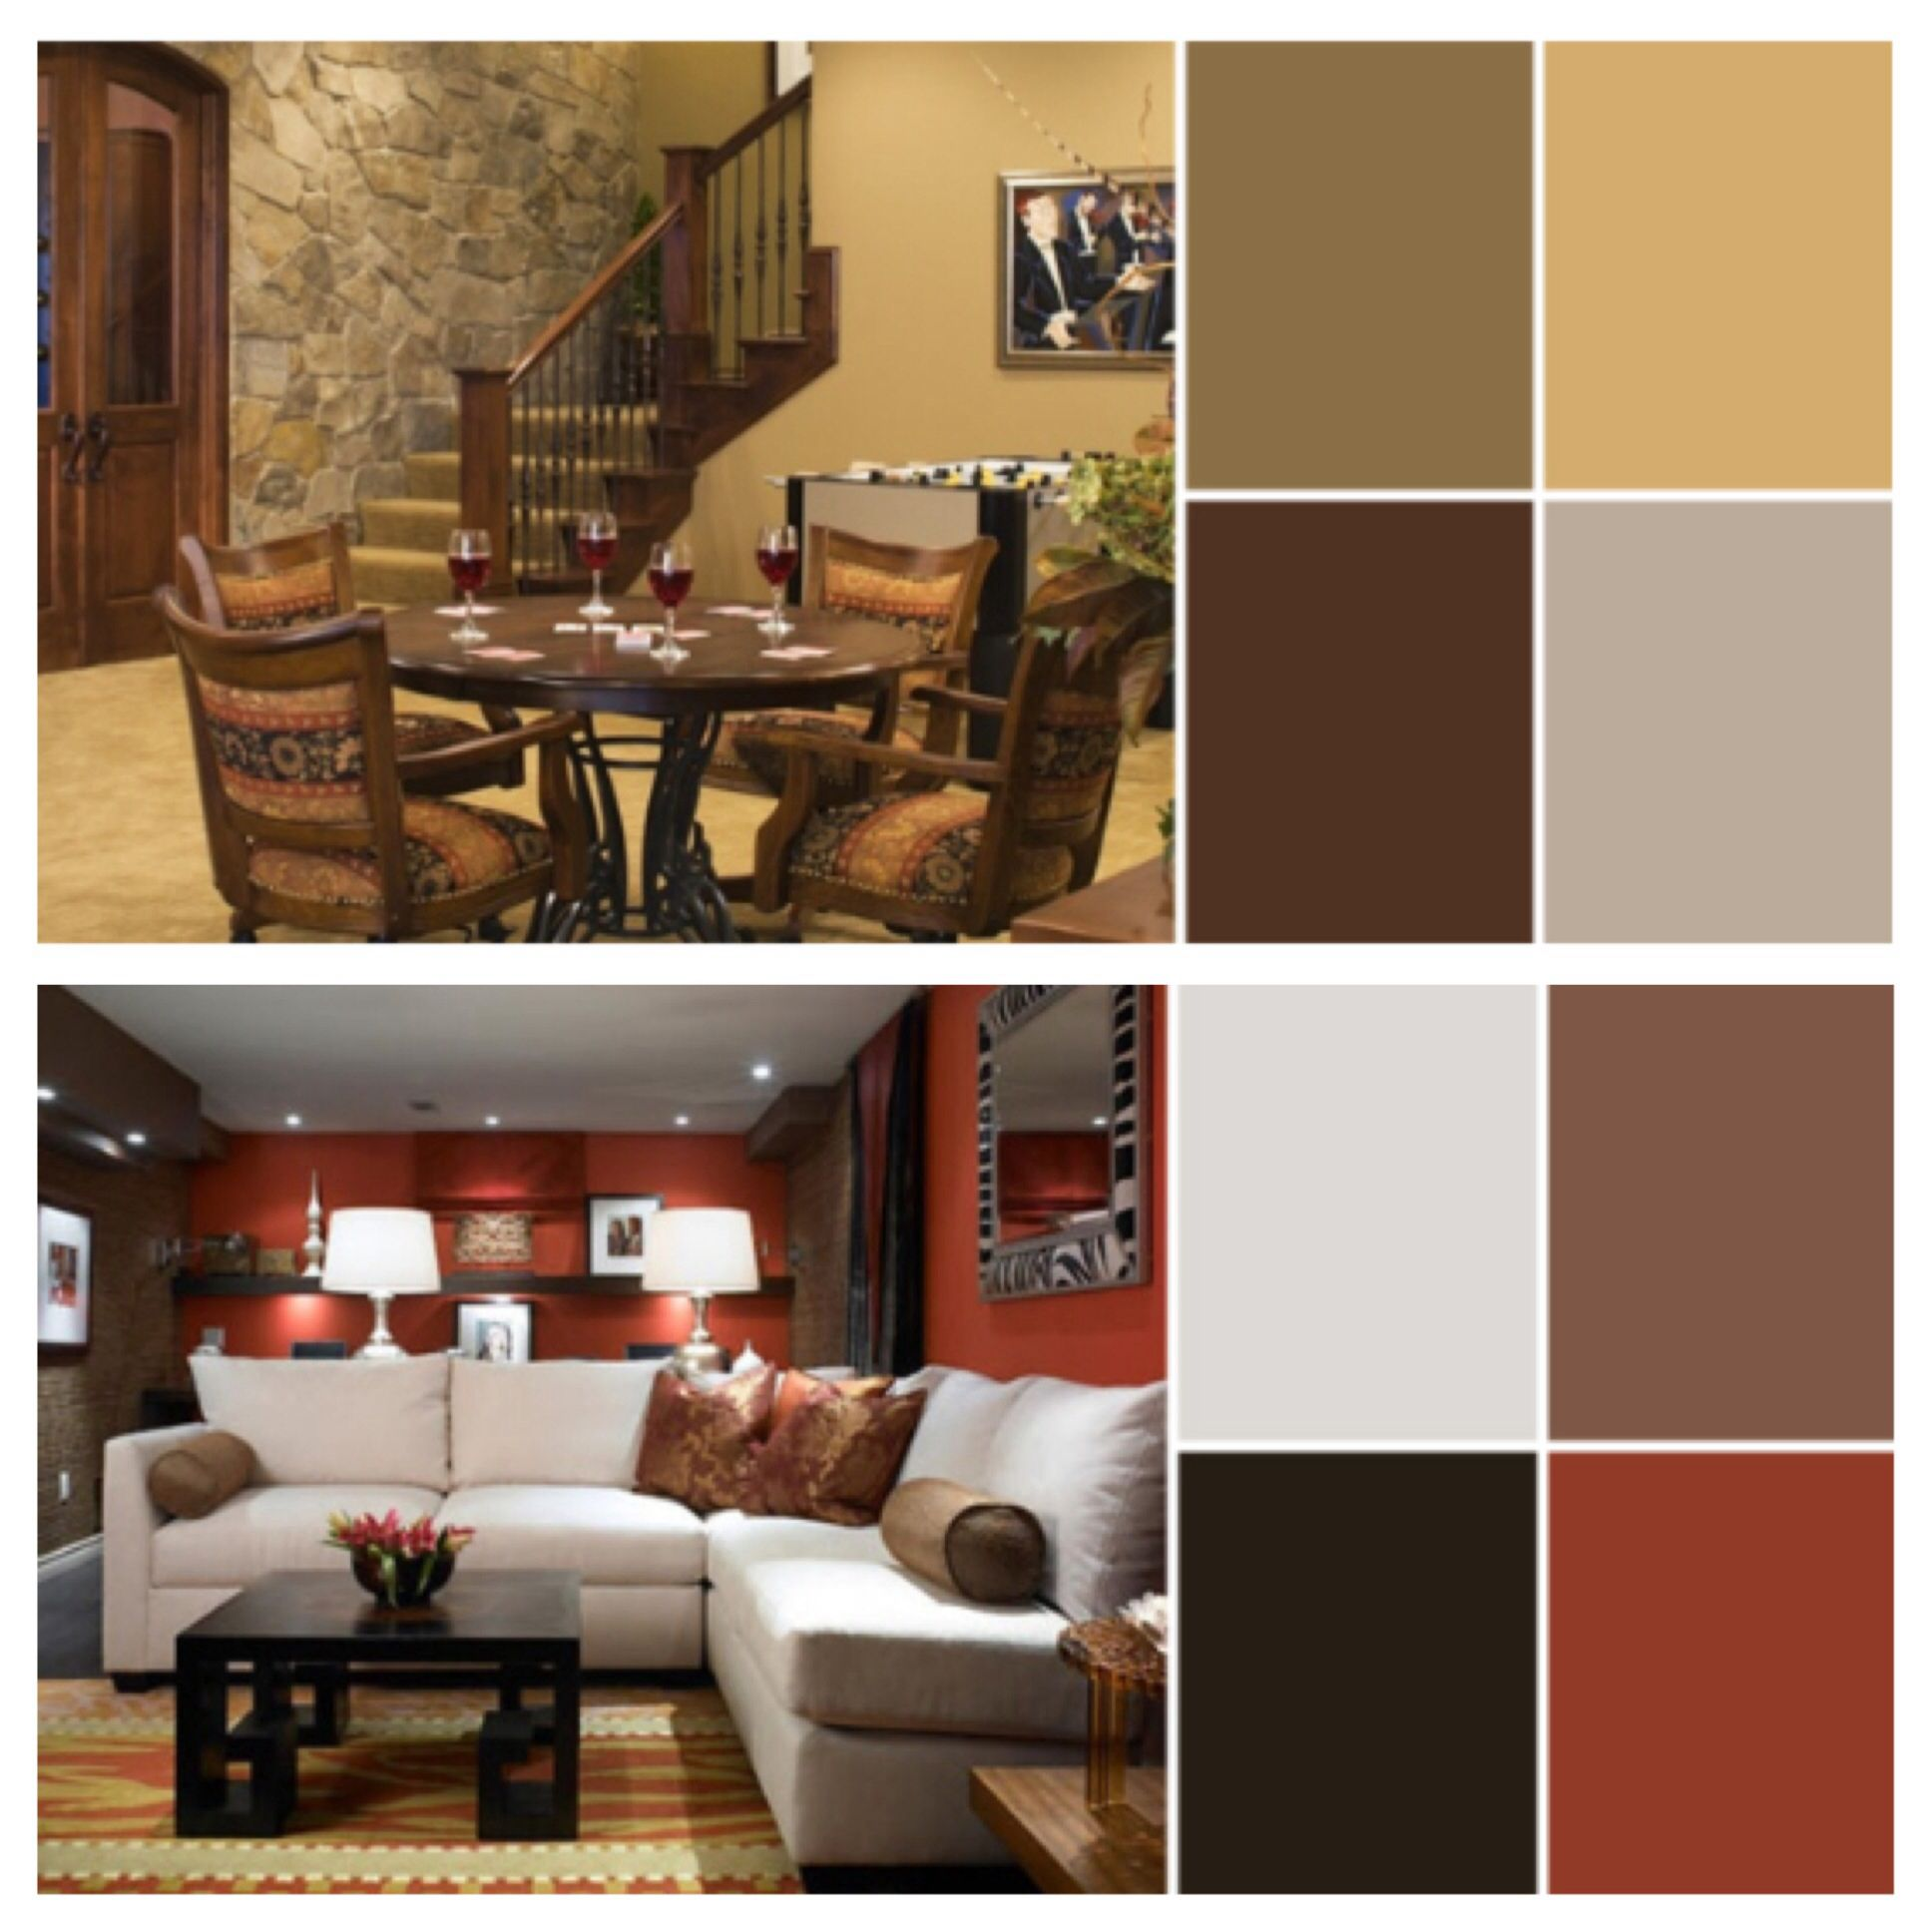 10 Best Paint Colors For Rustic Living Room